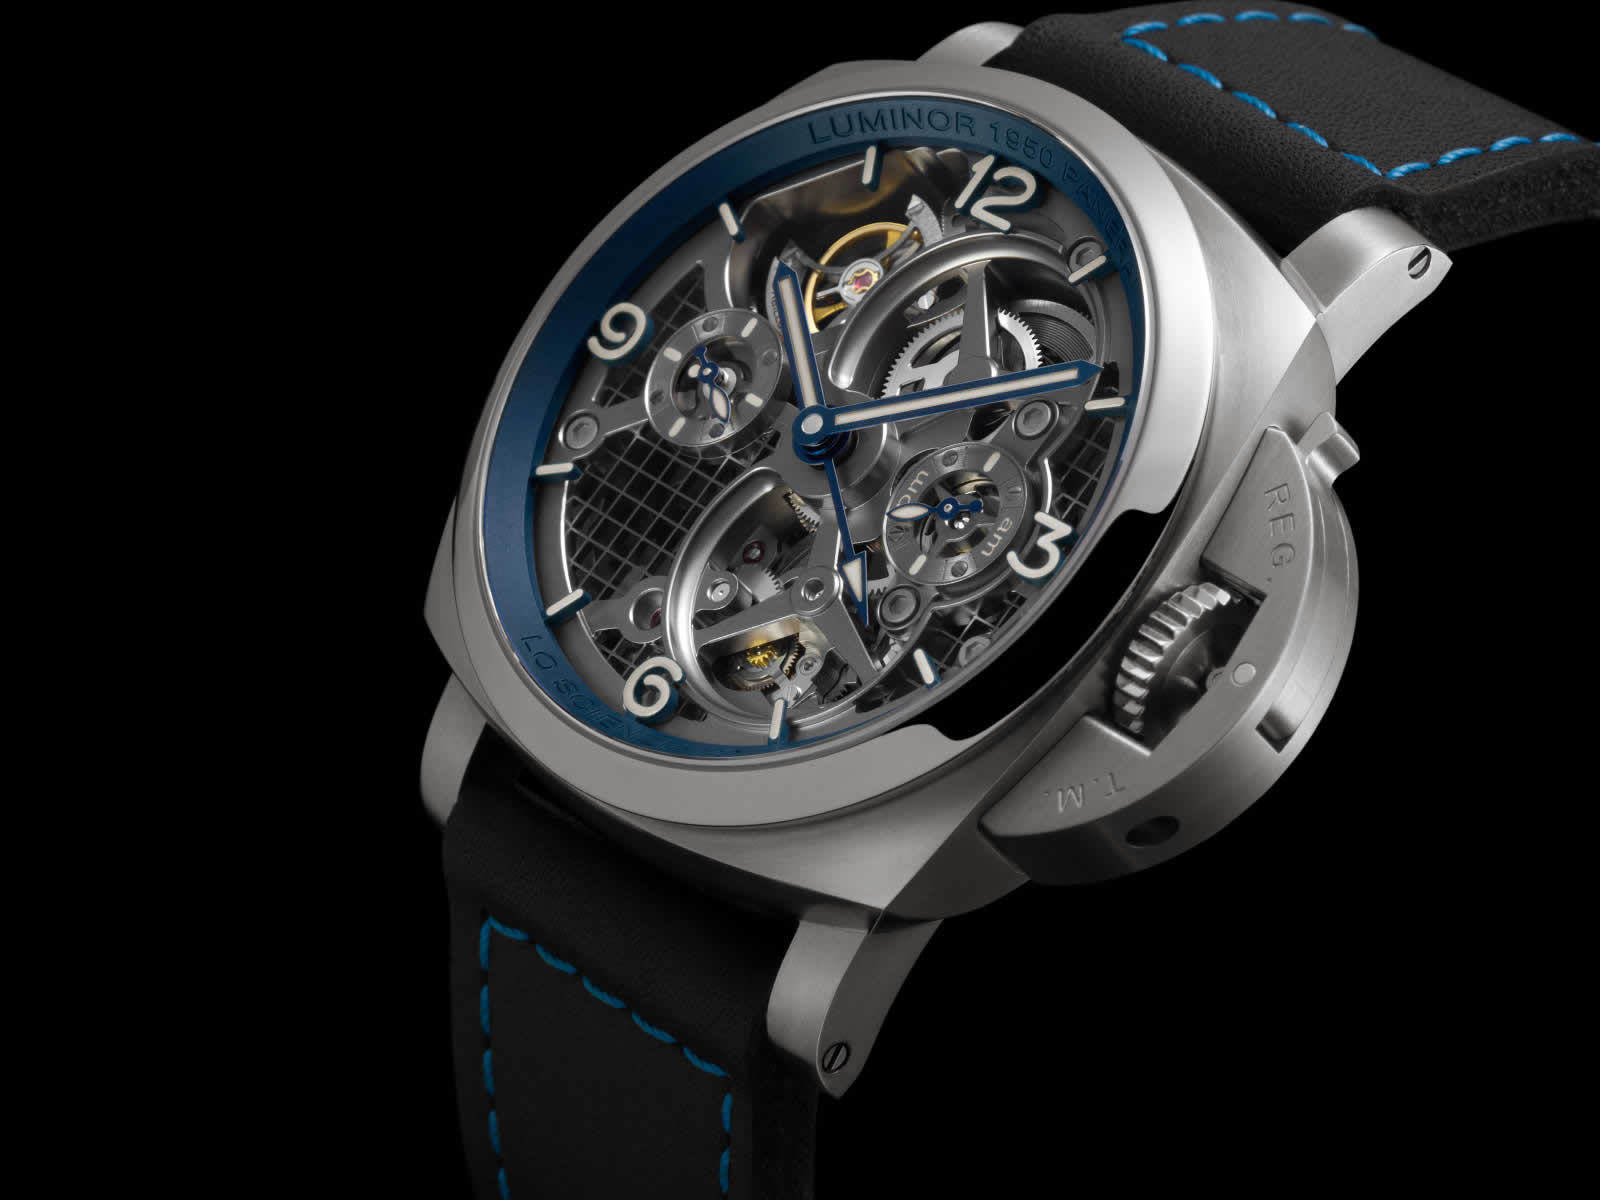 Panerai-Lo-Scienziato-Luminor-1950-Tourbillon-Gmt-Pam00767-1.jpg